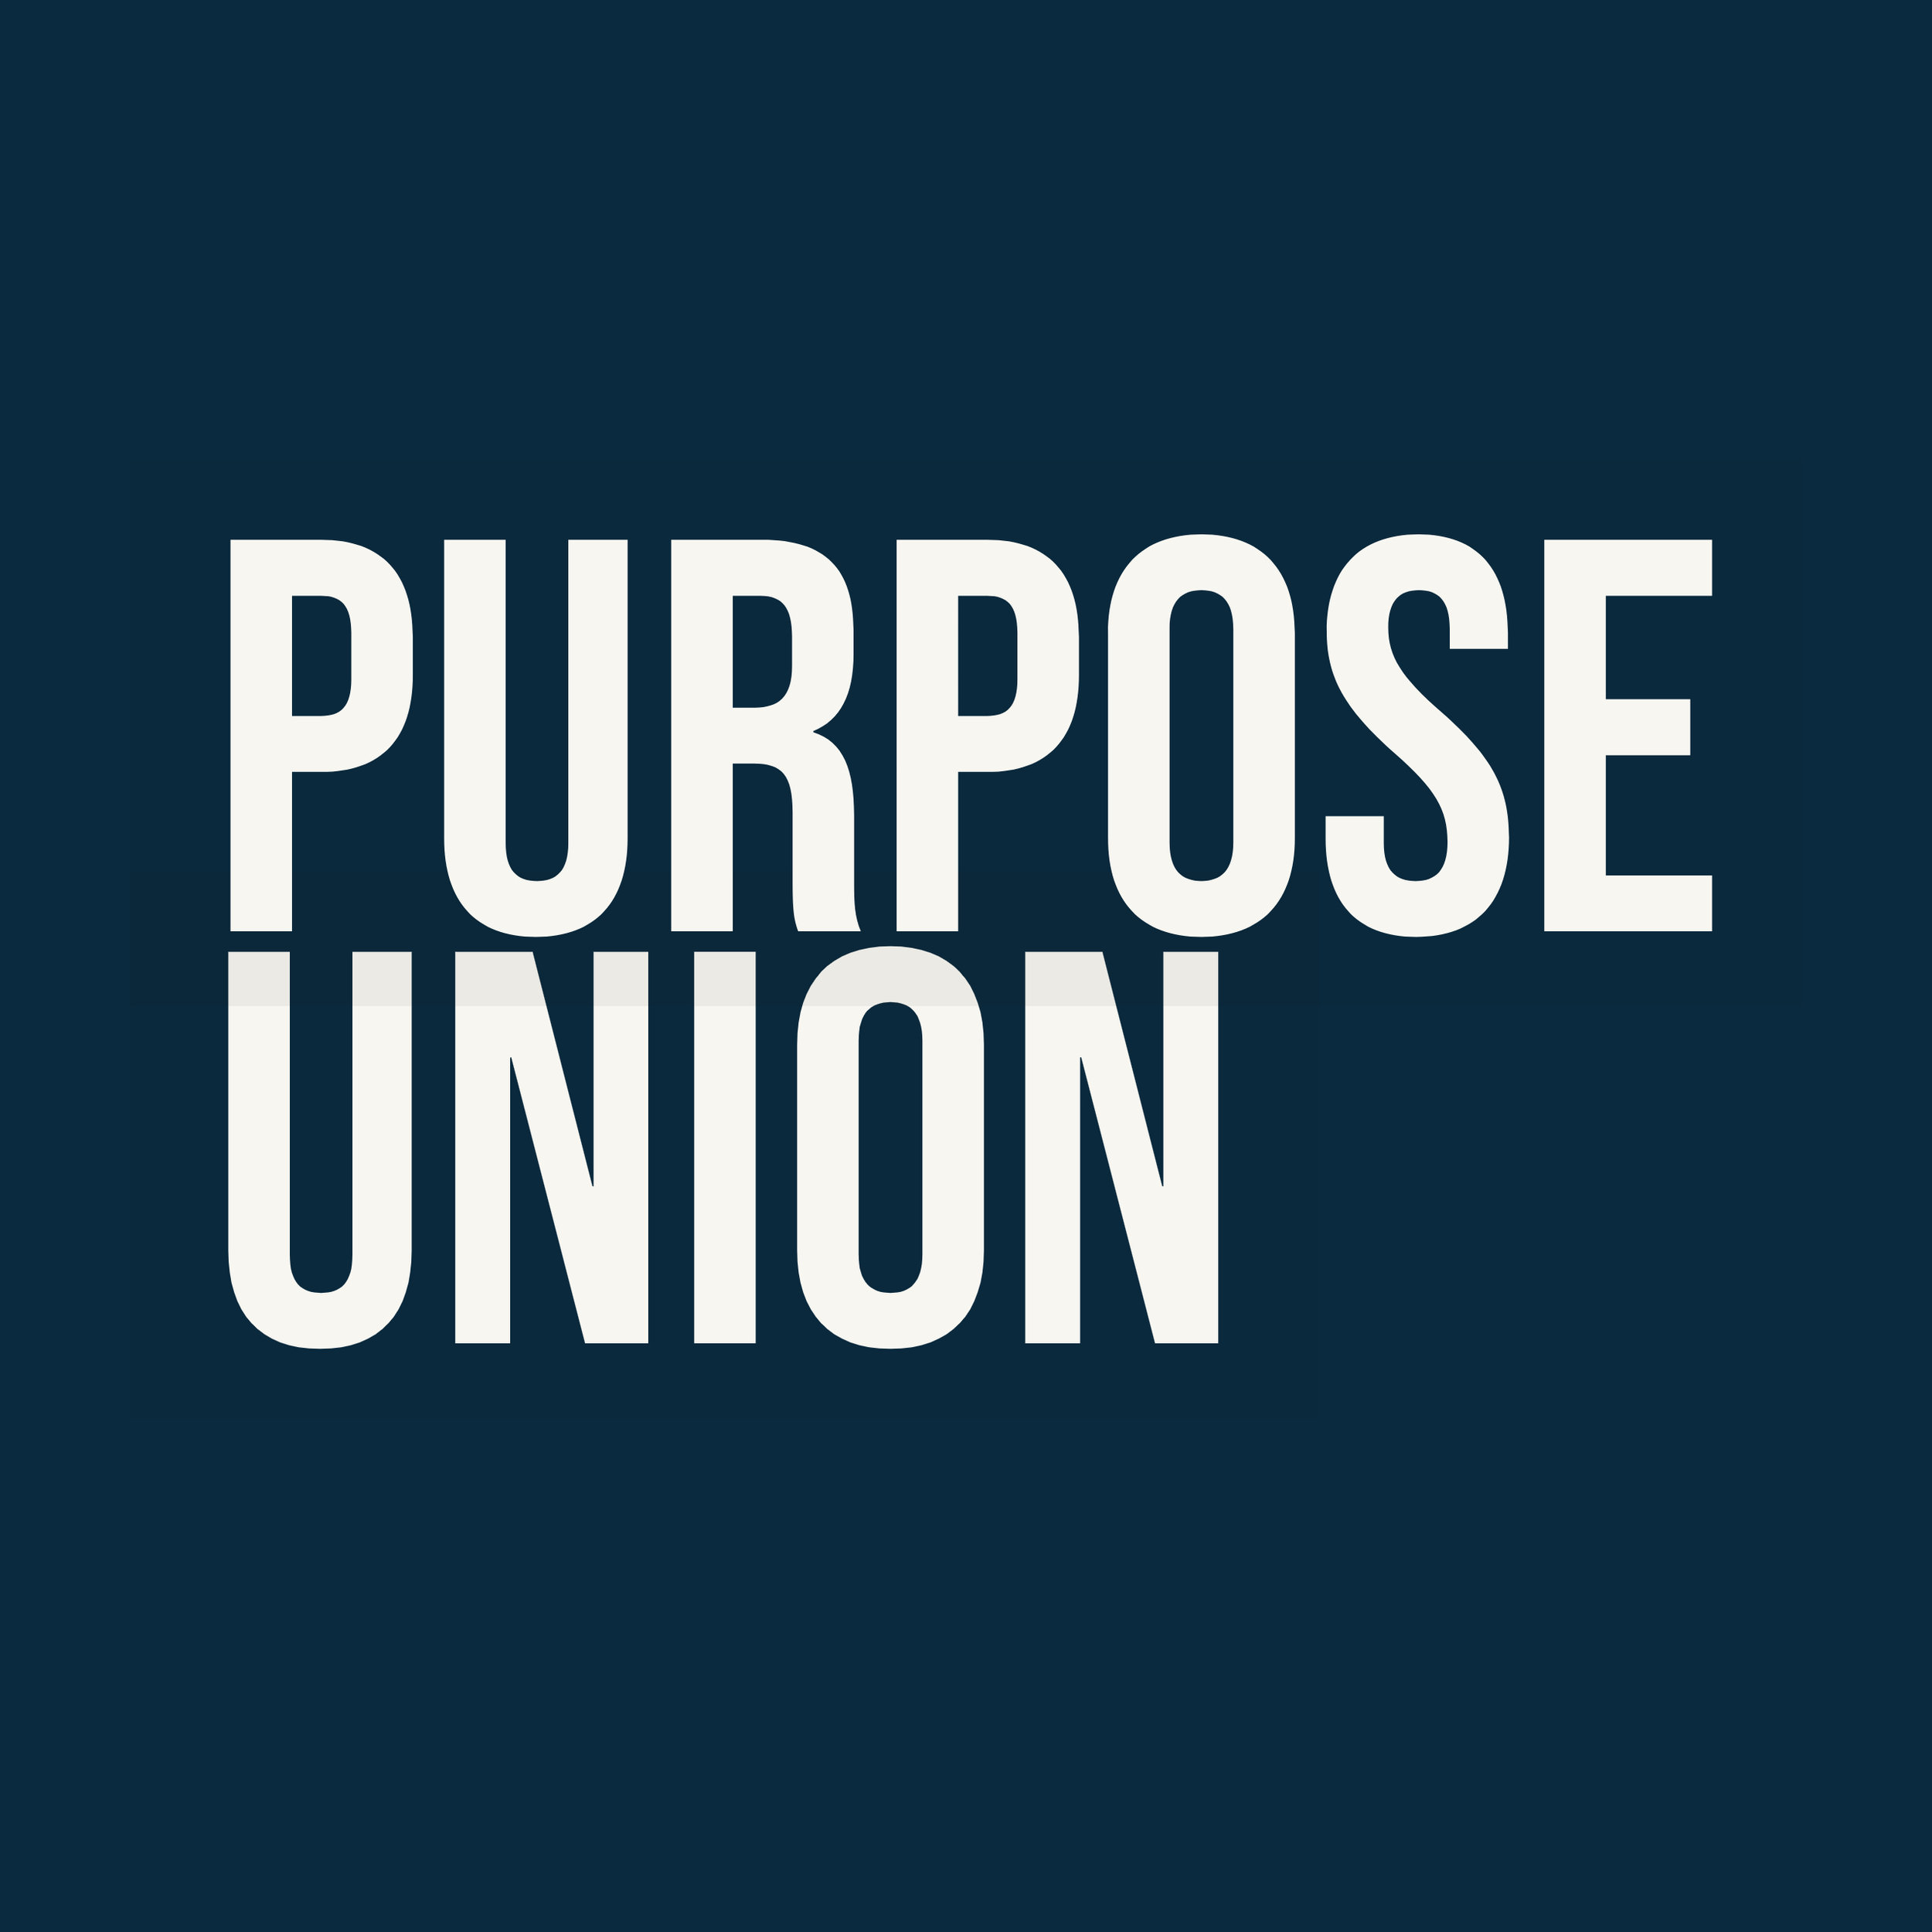 Purpose Union     Social Purpose Communications   Purpose Union is a specialist social purpose agency that works with clients to develop compelling arguments, build powerful coalitions, and devise winning campaigns to change the world for good.